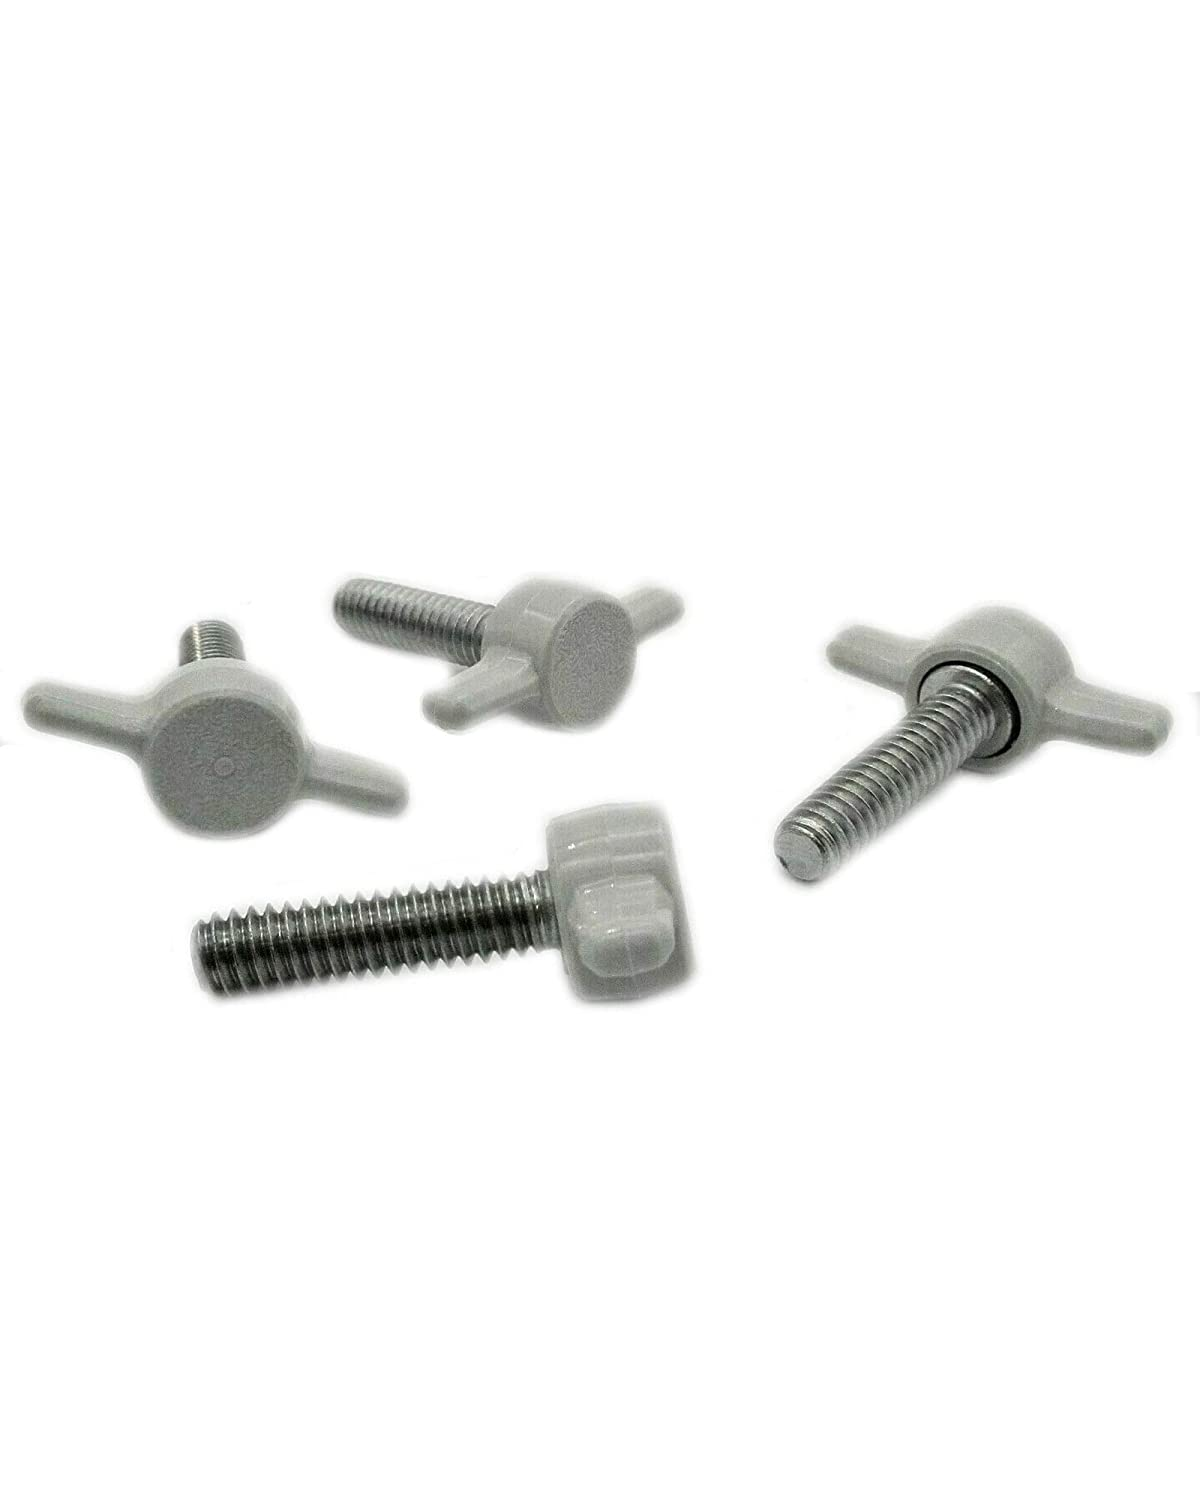 Steel High-Profile Thread Size 1//4-20 Thread Size 1//4-20 FastenerParts Knurled-Head Thumb Screw